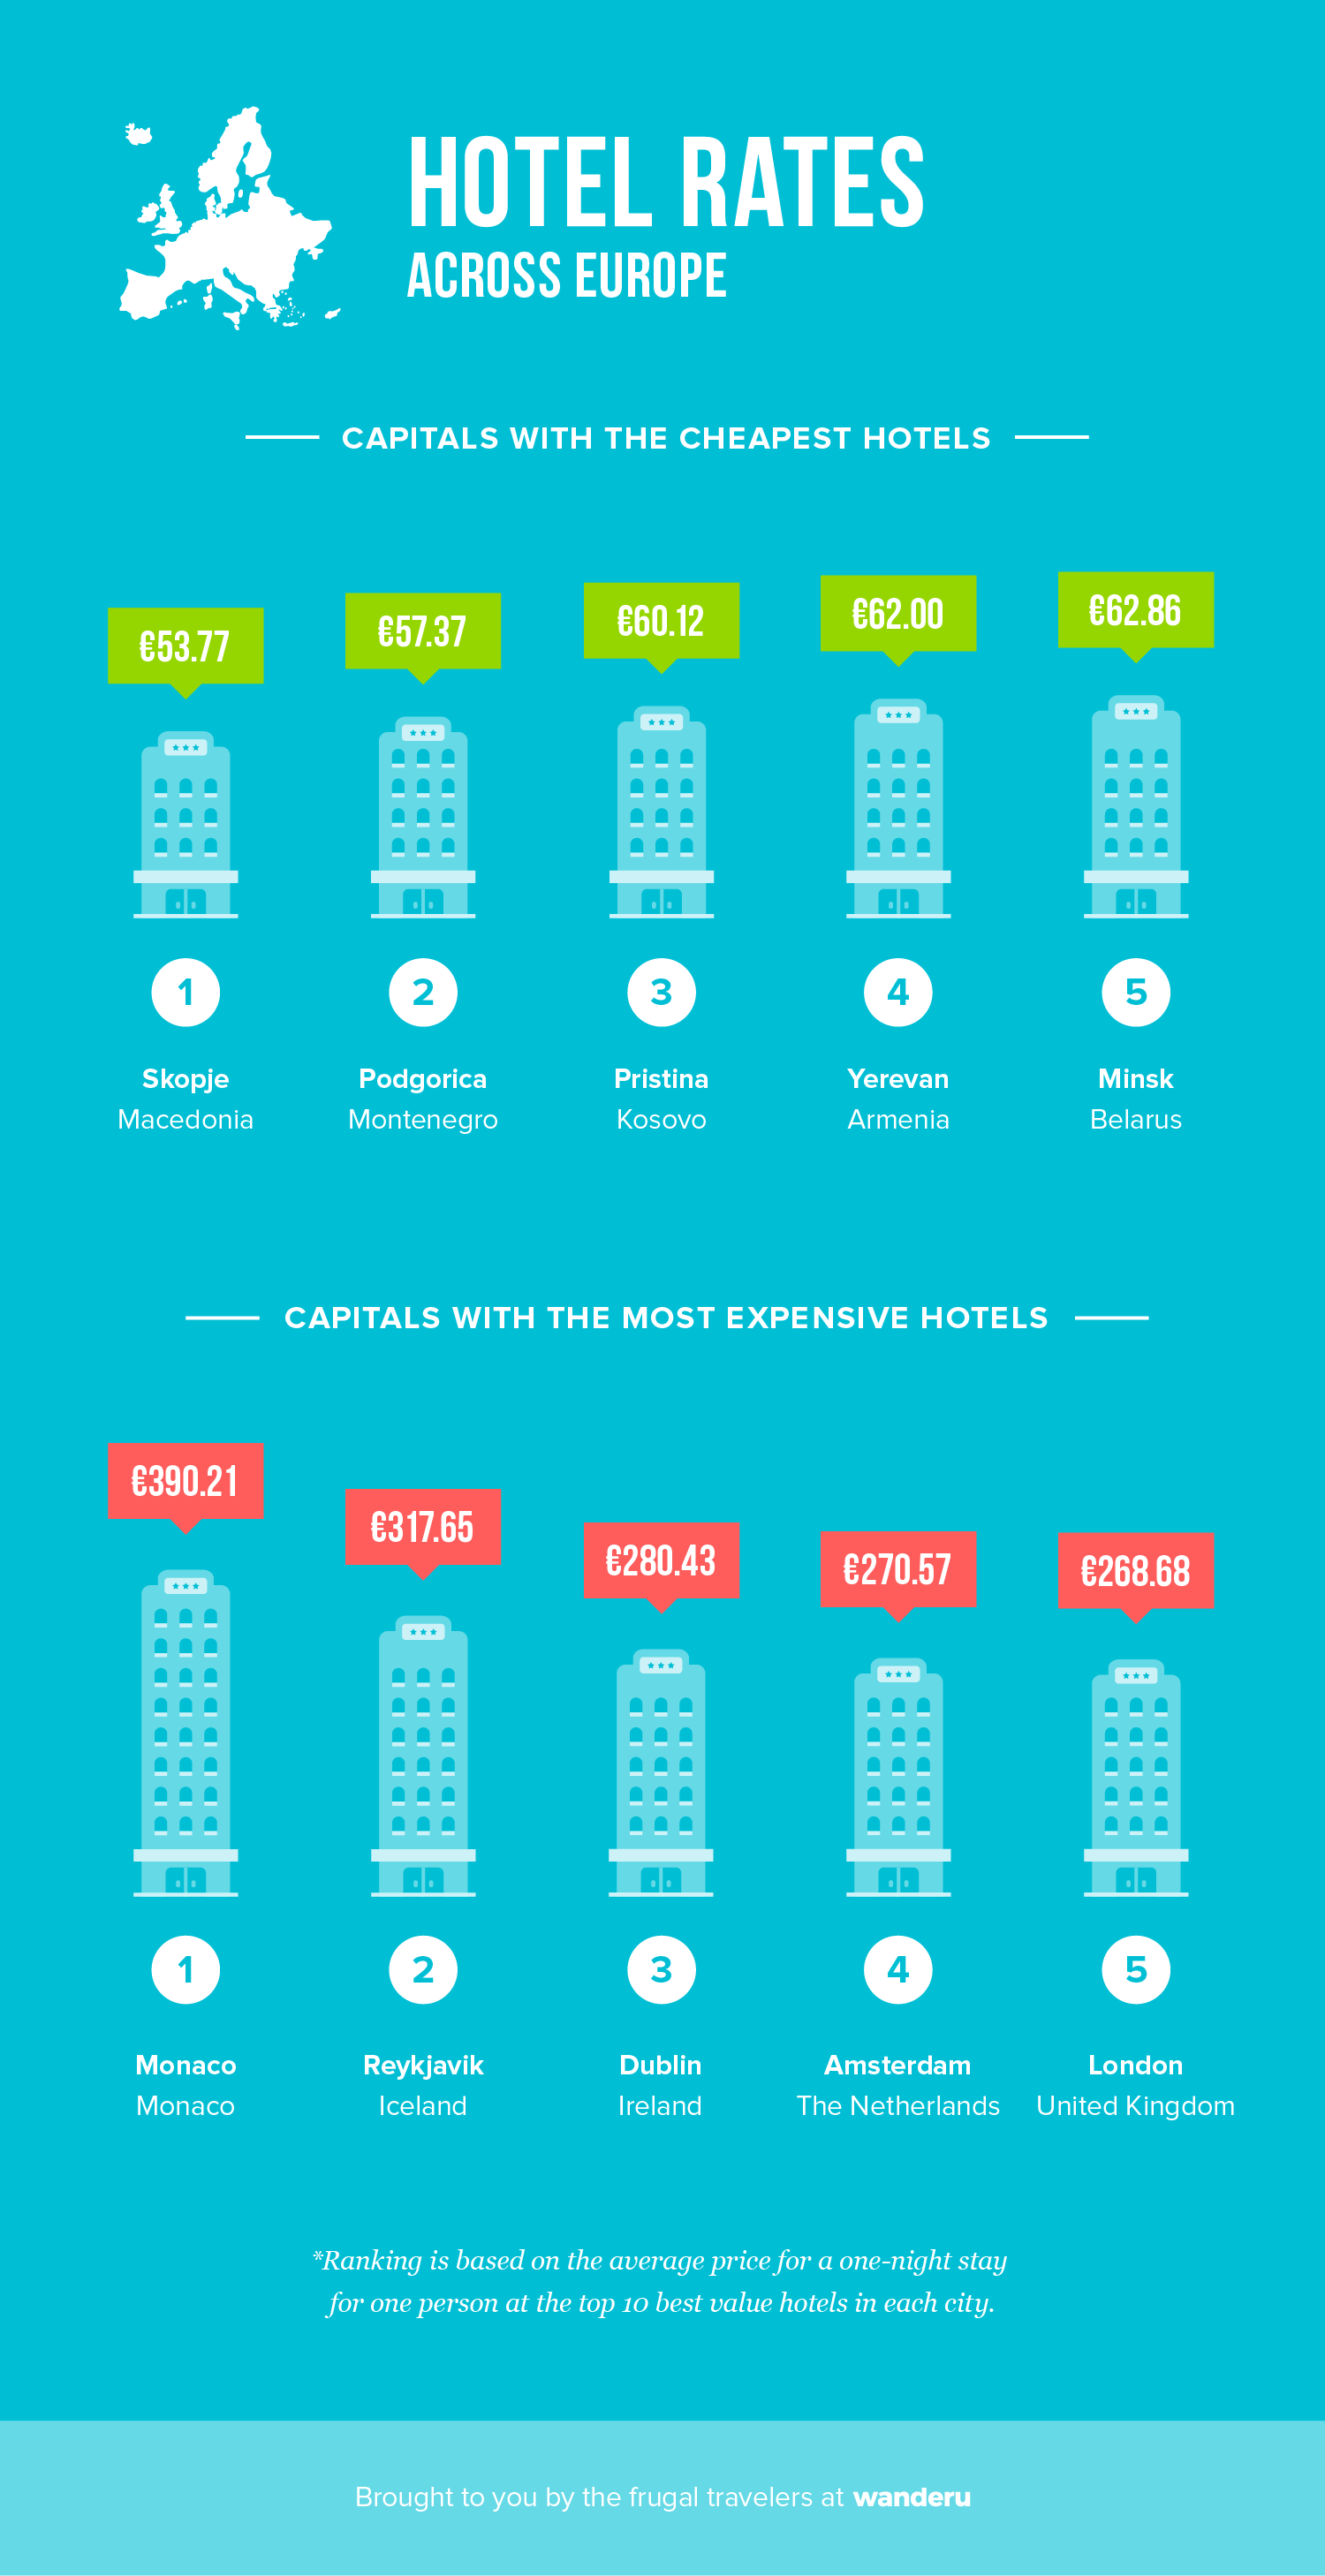 Hotels in Europe.